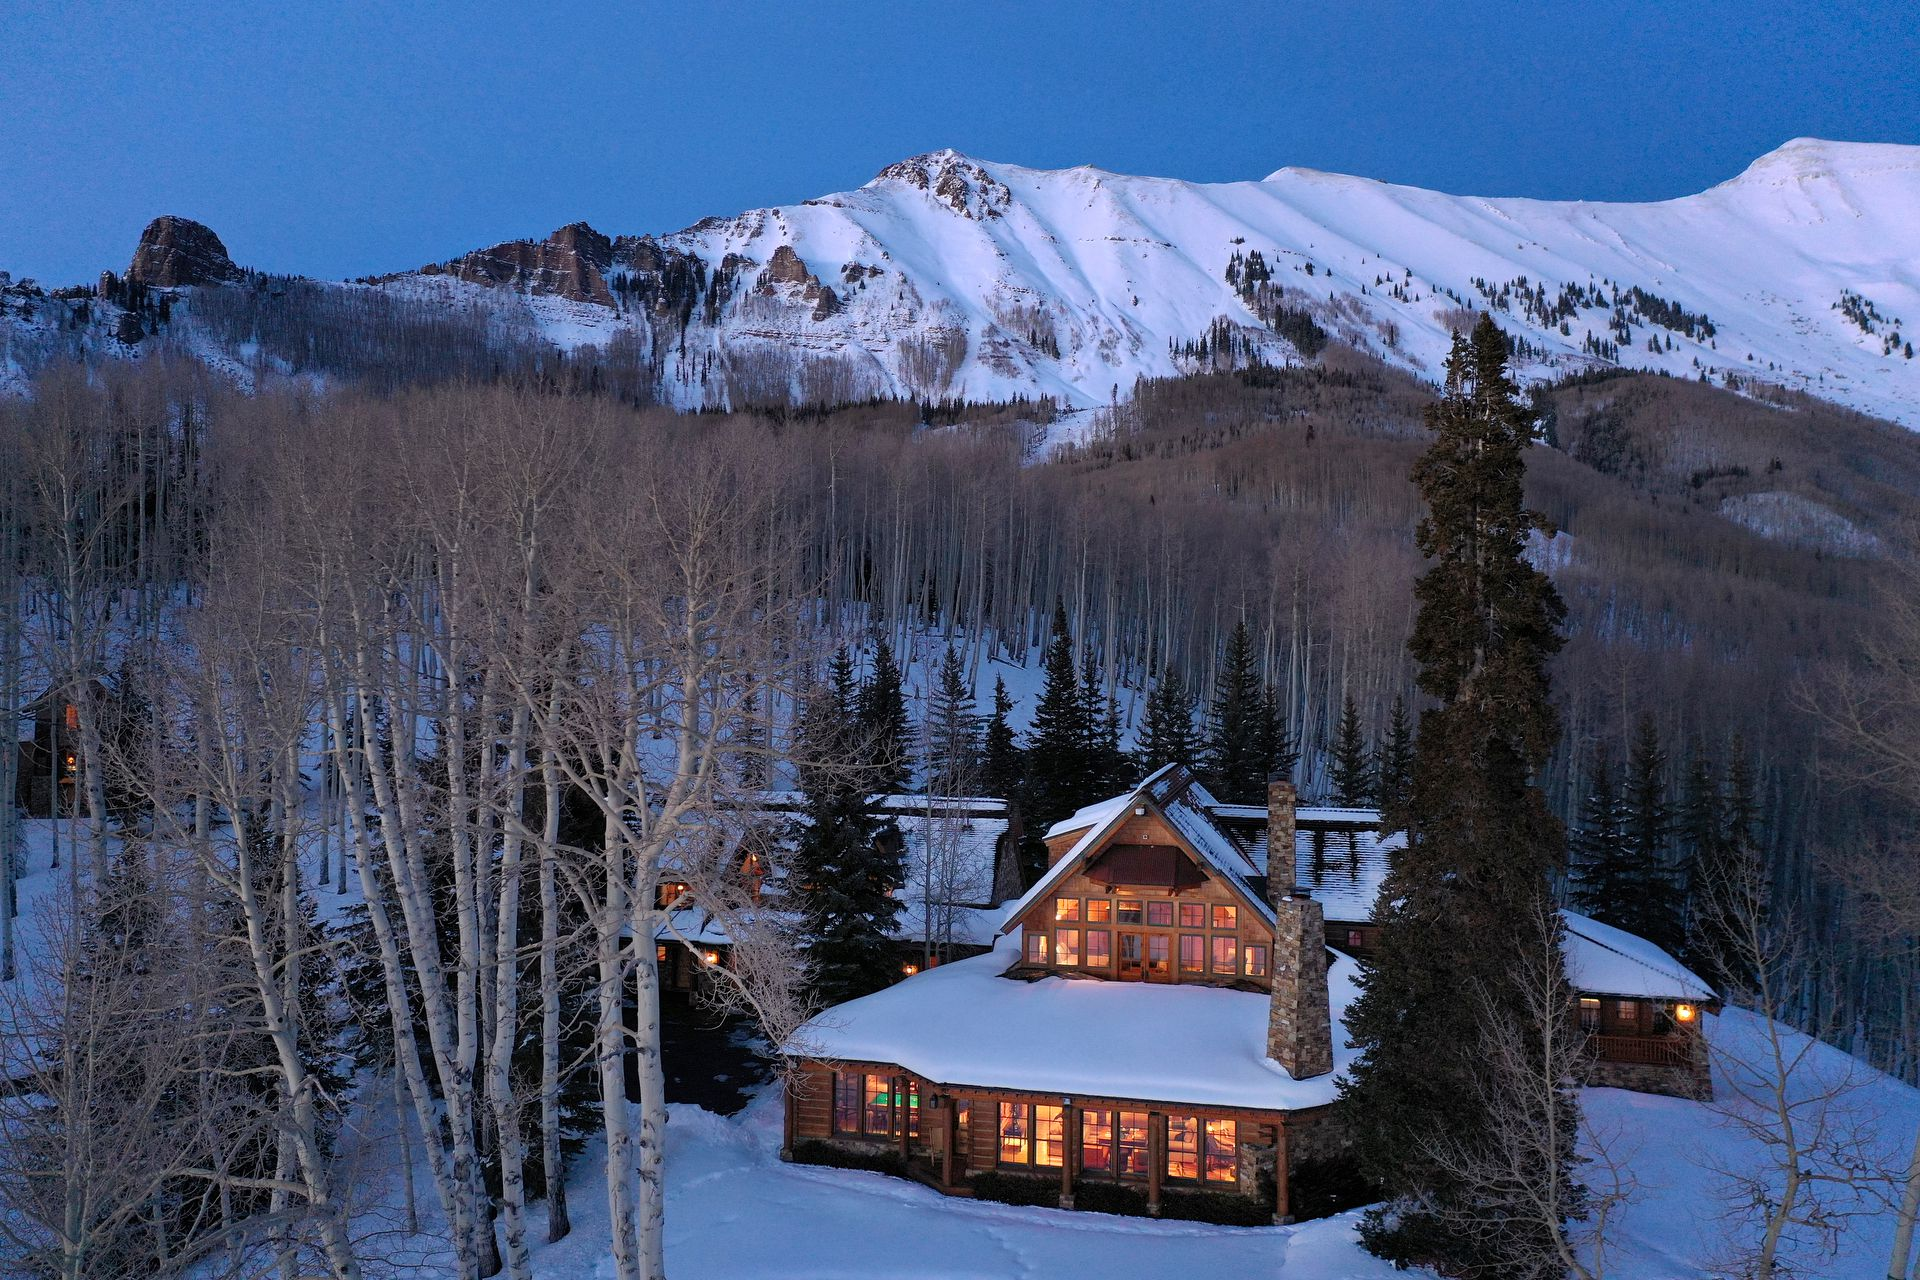 Tom Cruise's Telluride ranch, enveloped by mountains